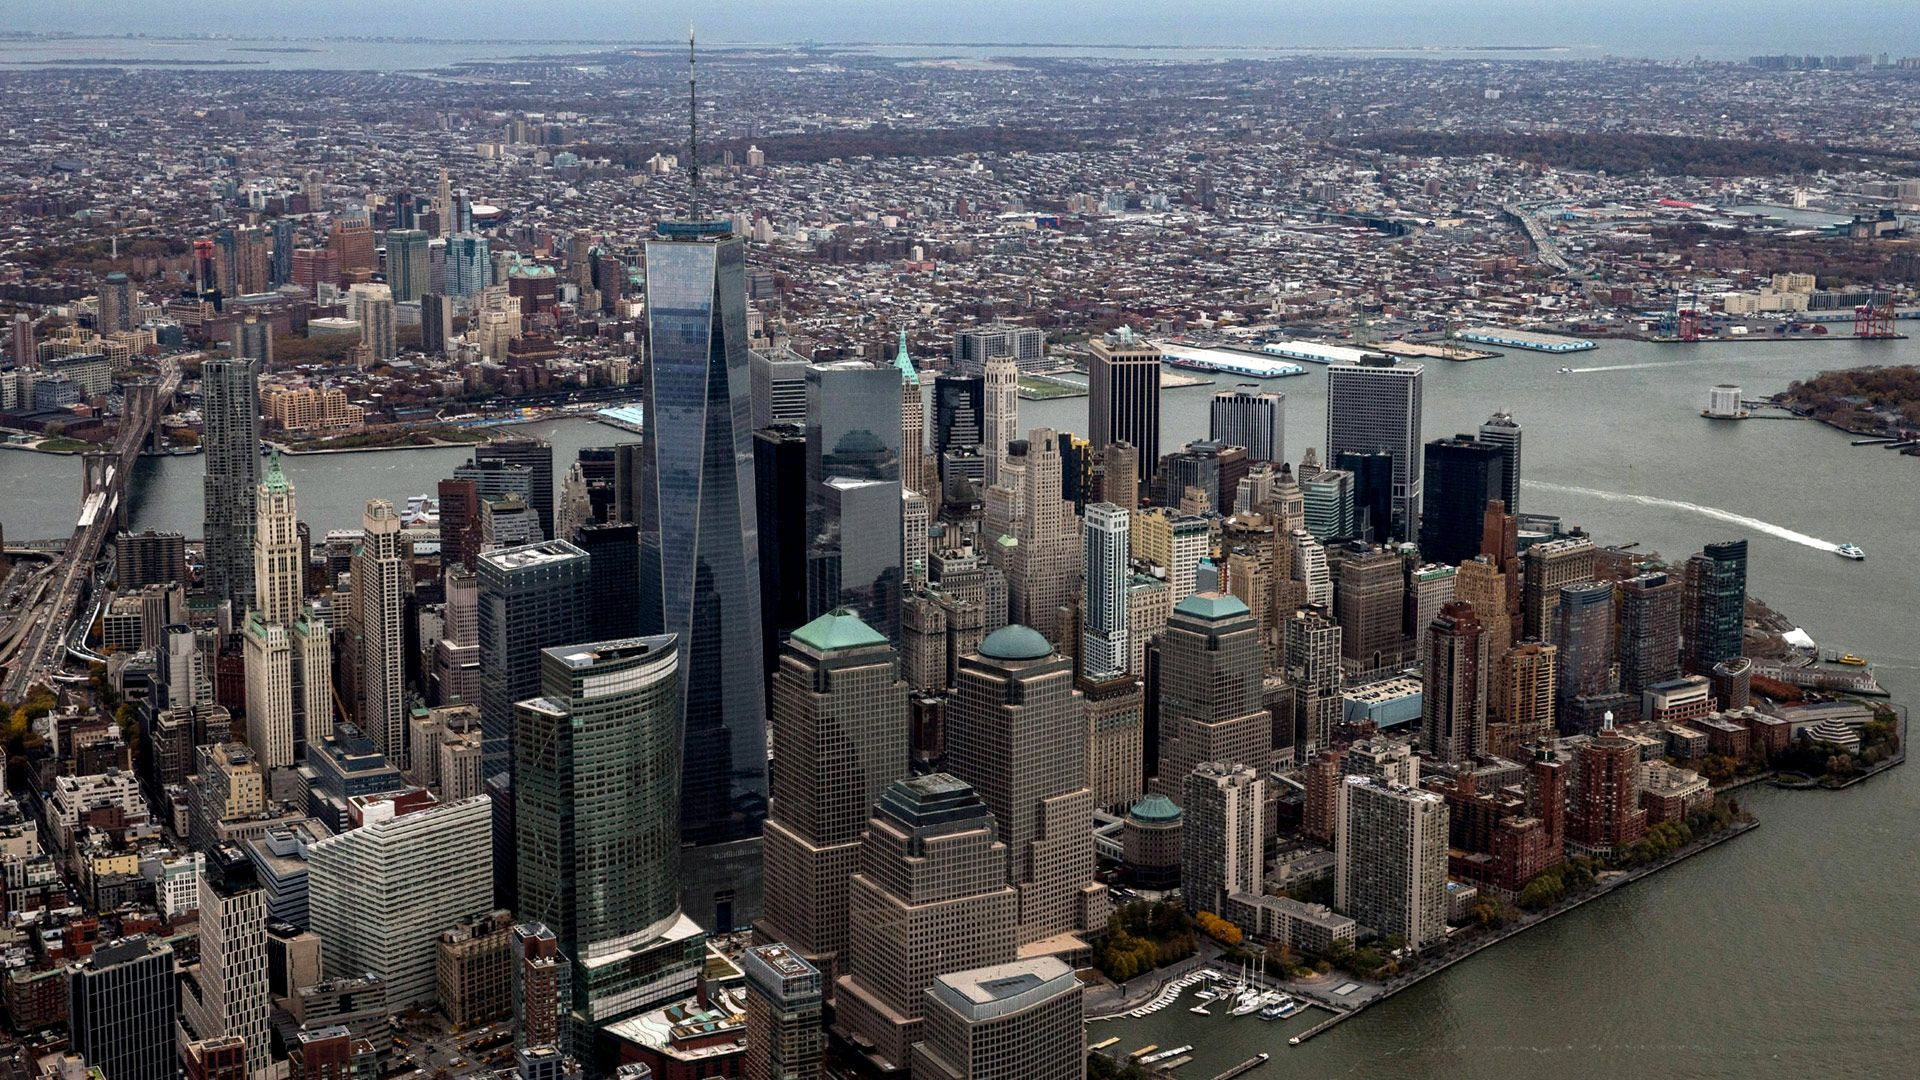 New-York-Amazing-Buildings-wallpapers-hd-1080p-1920x1080